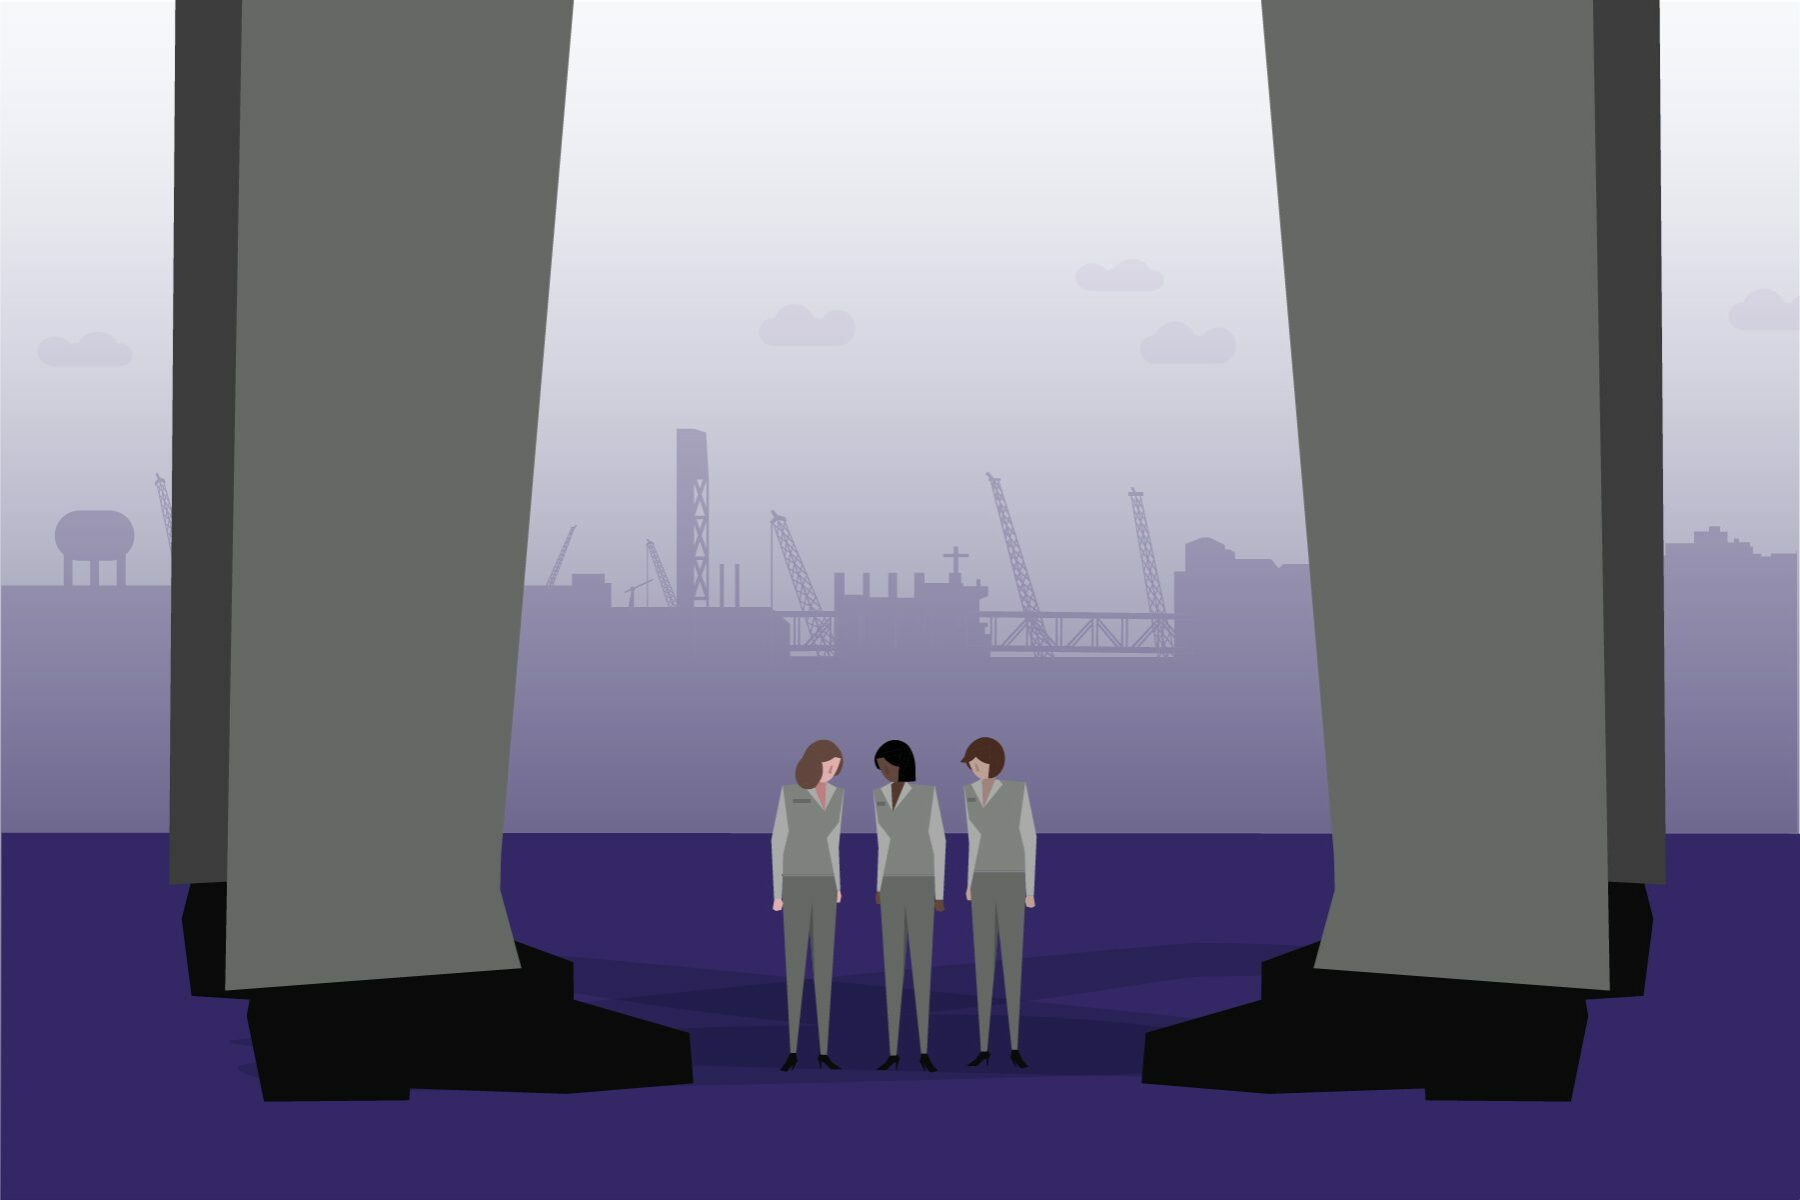 Illustration of women in the shadow of gender discrimination and harassment.